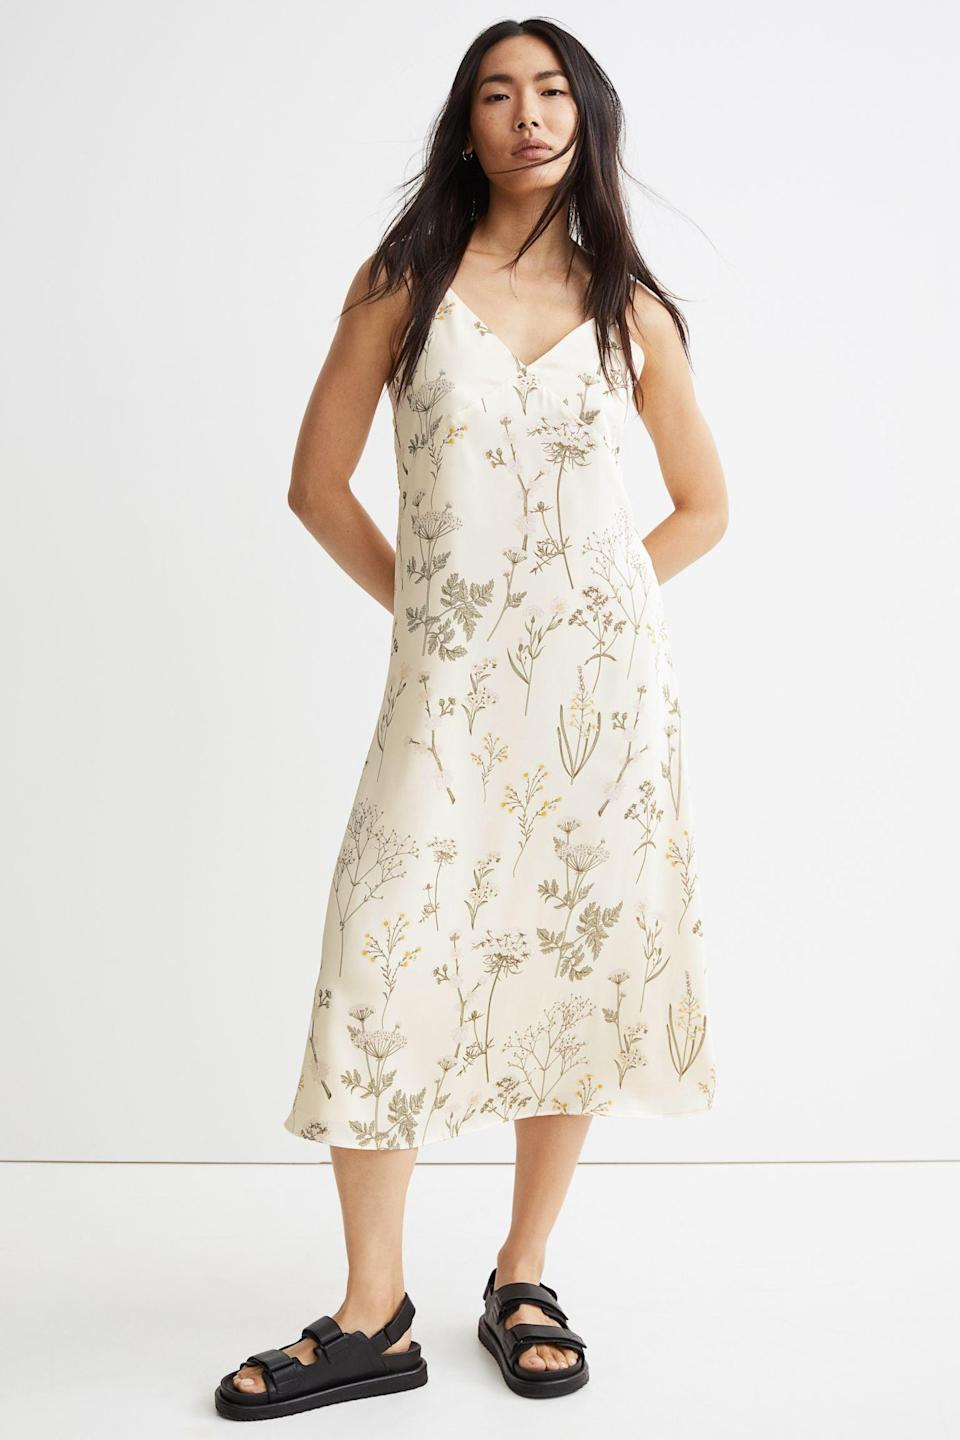 <p>This <span>V-neck Satin Dress</span> ($27, originally $30) oozes femininity and elegance, which makes it ideal for a chic date or a solo museum day.</p>